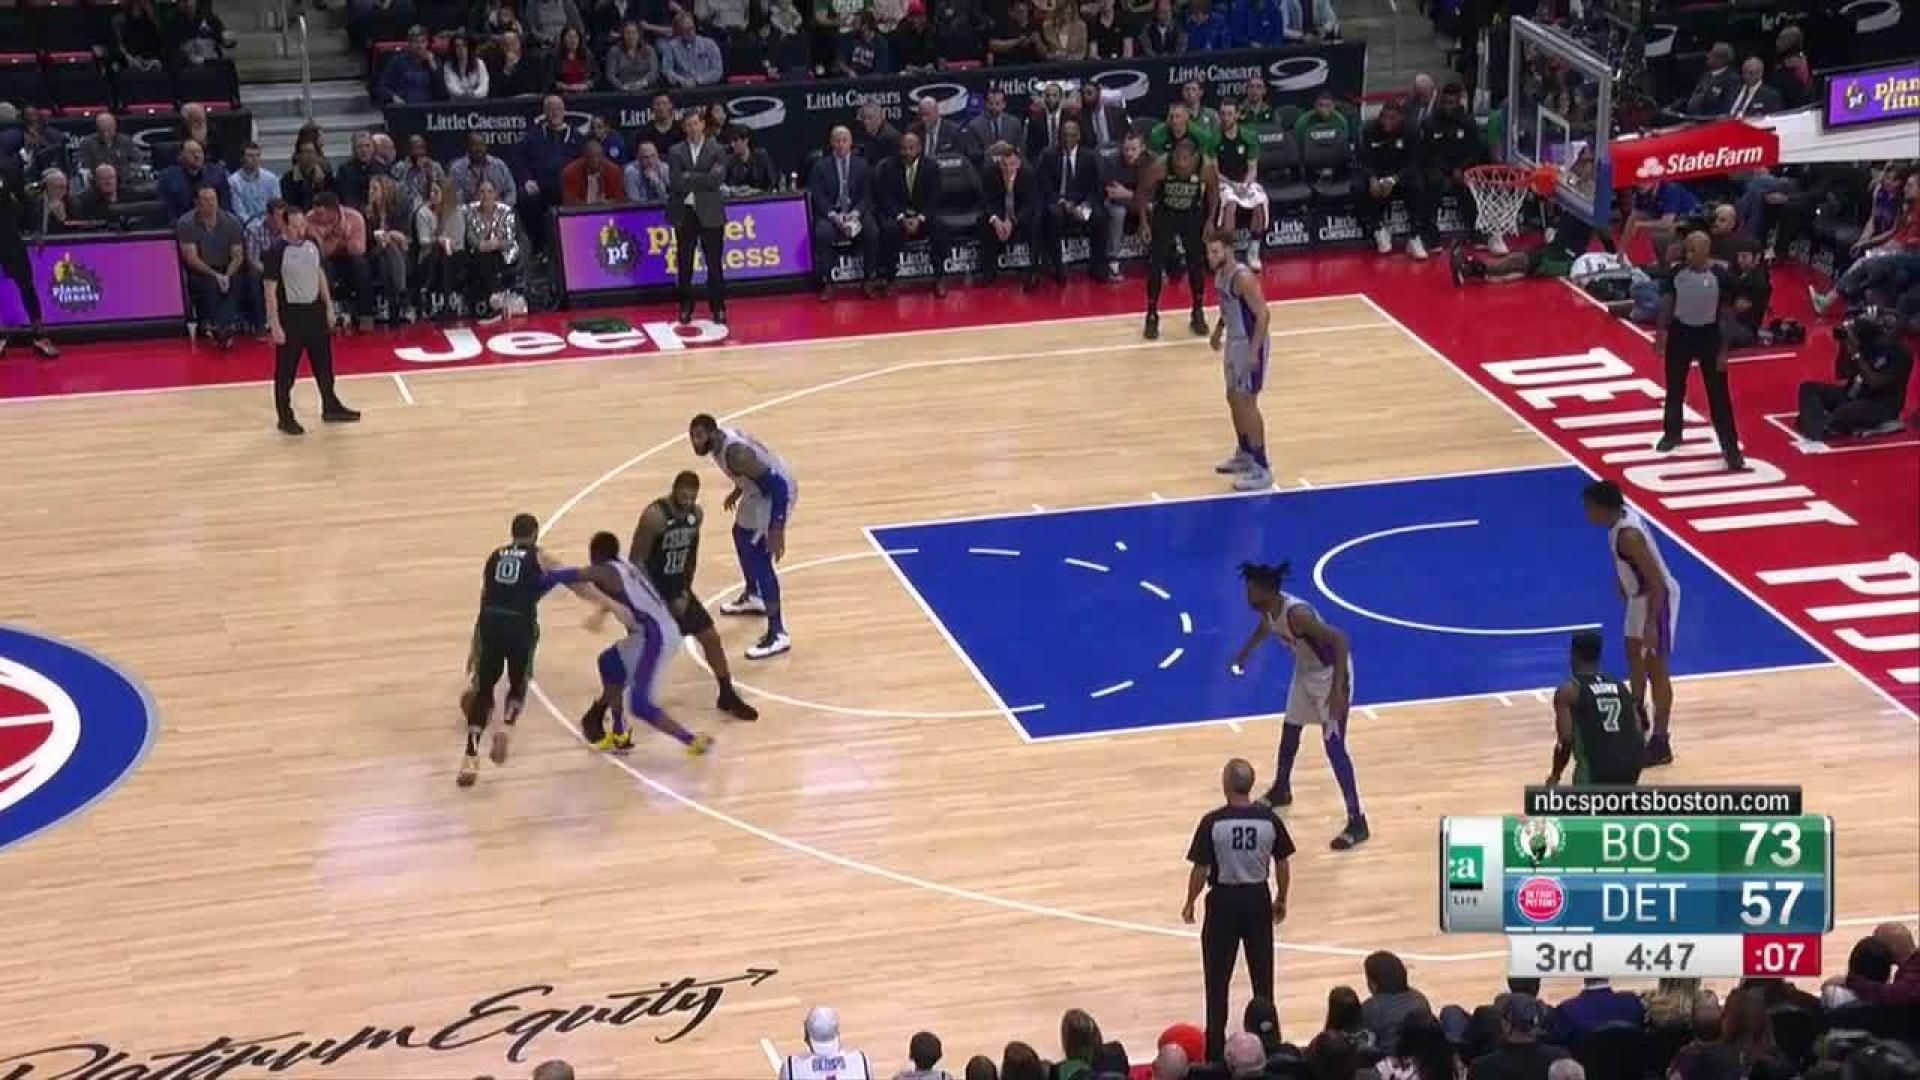 Jayson Tatum knocks it down as the clock expires in the